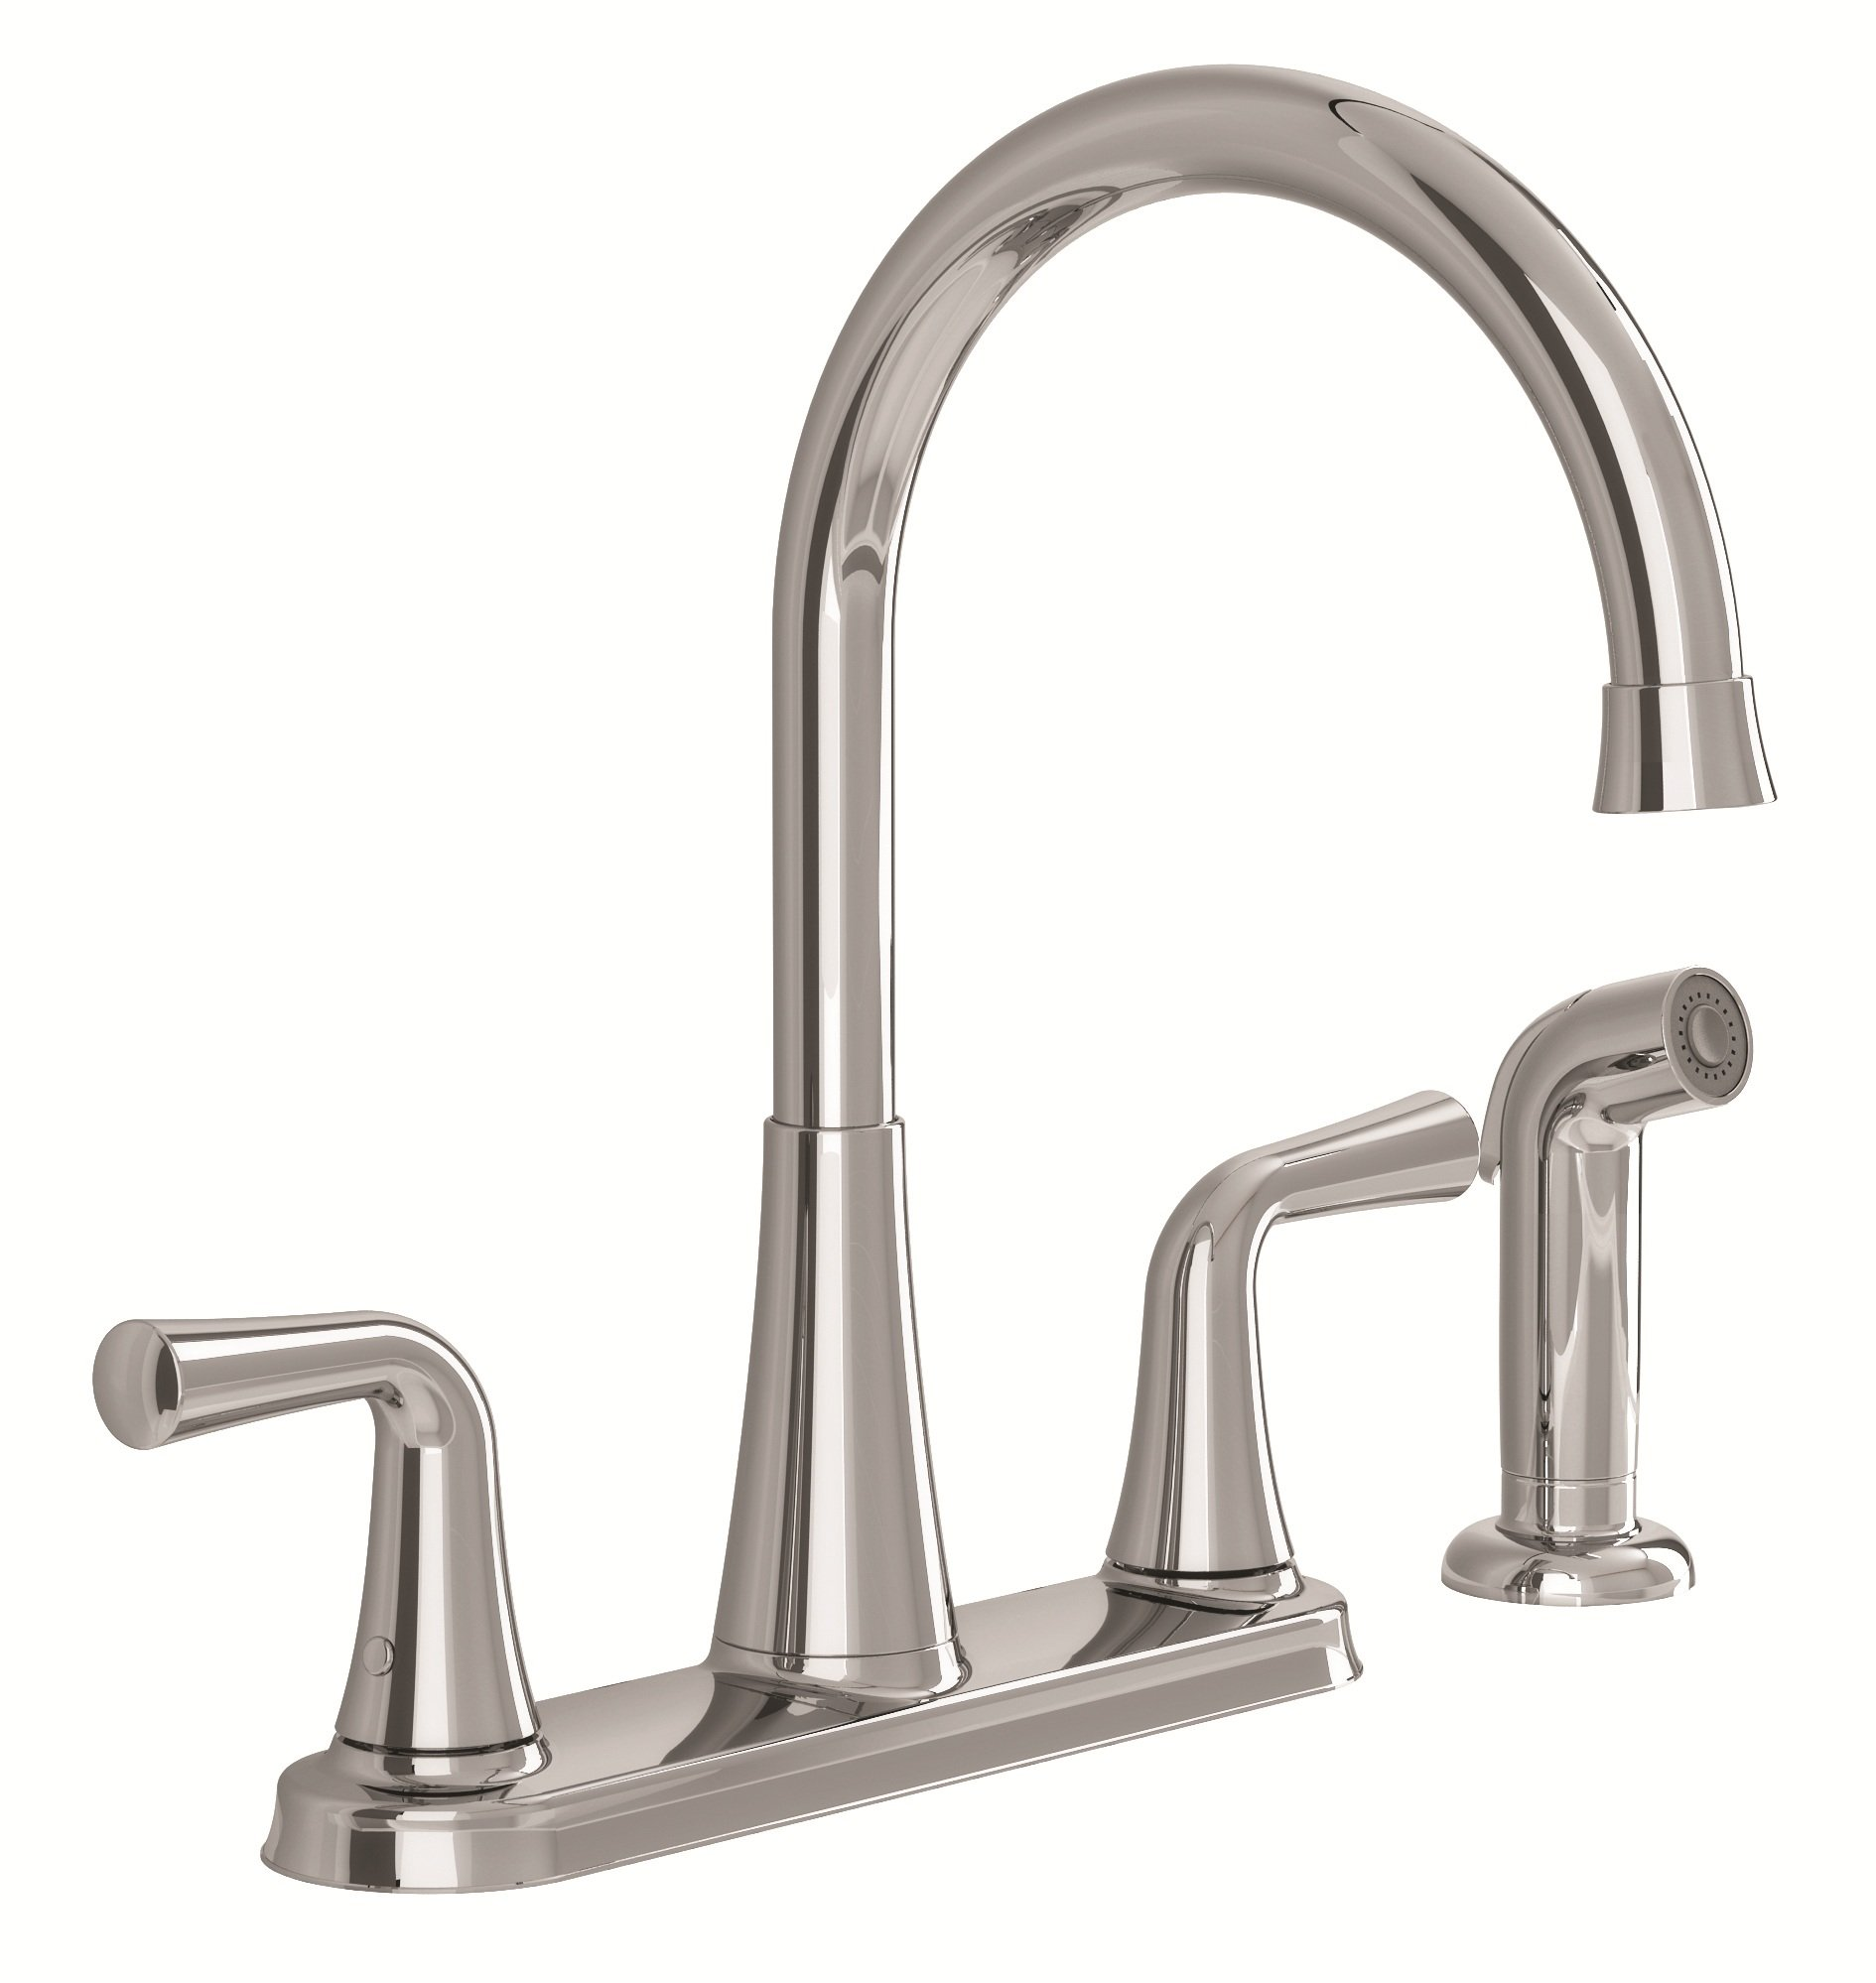 Superieur Stock Photo Of The Angeline Kitchen Faucet And Side Spray